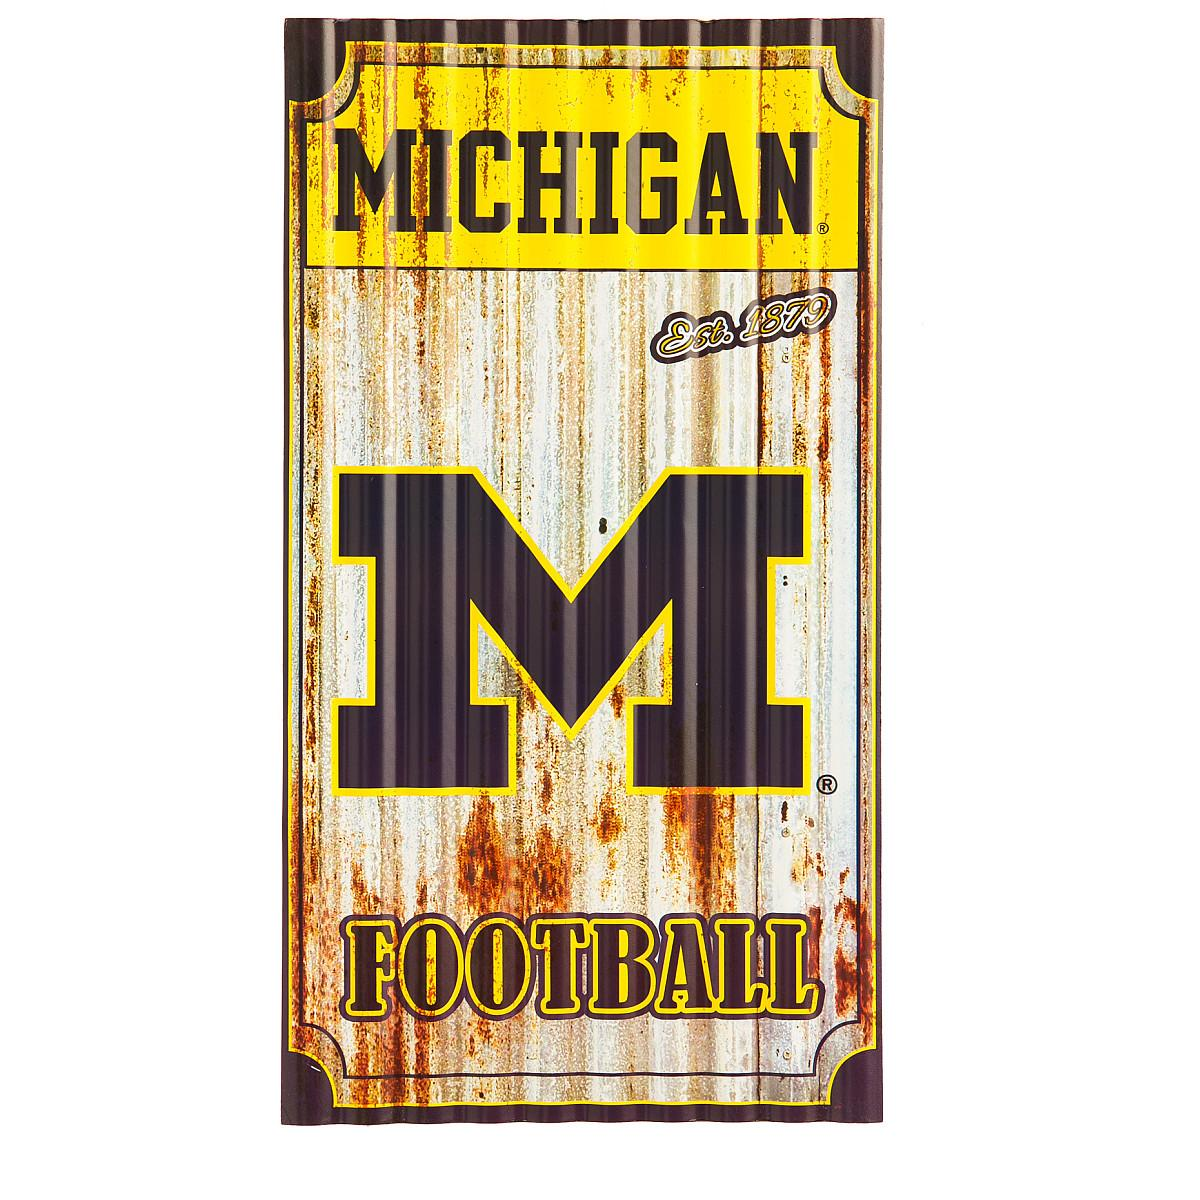 TEAM SPORTS AMERICA MICHIGAN WOLVERINES CORRUGATED METAL WALL ART ...